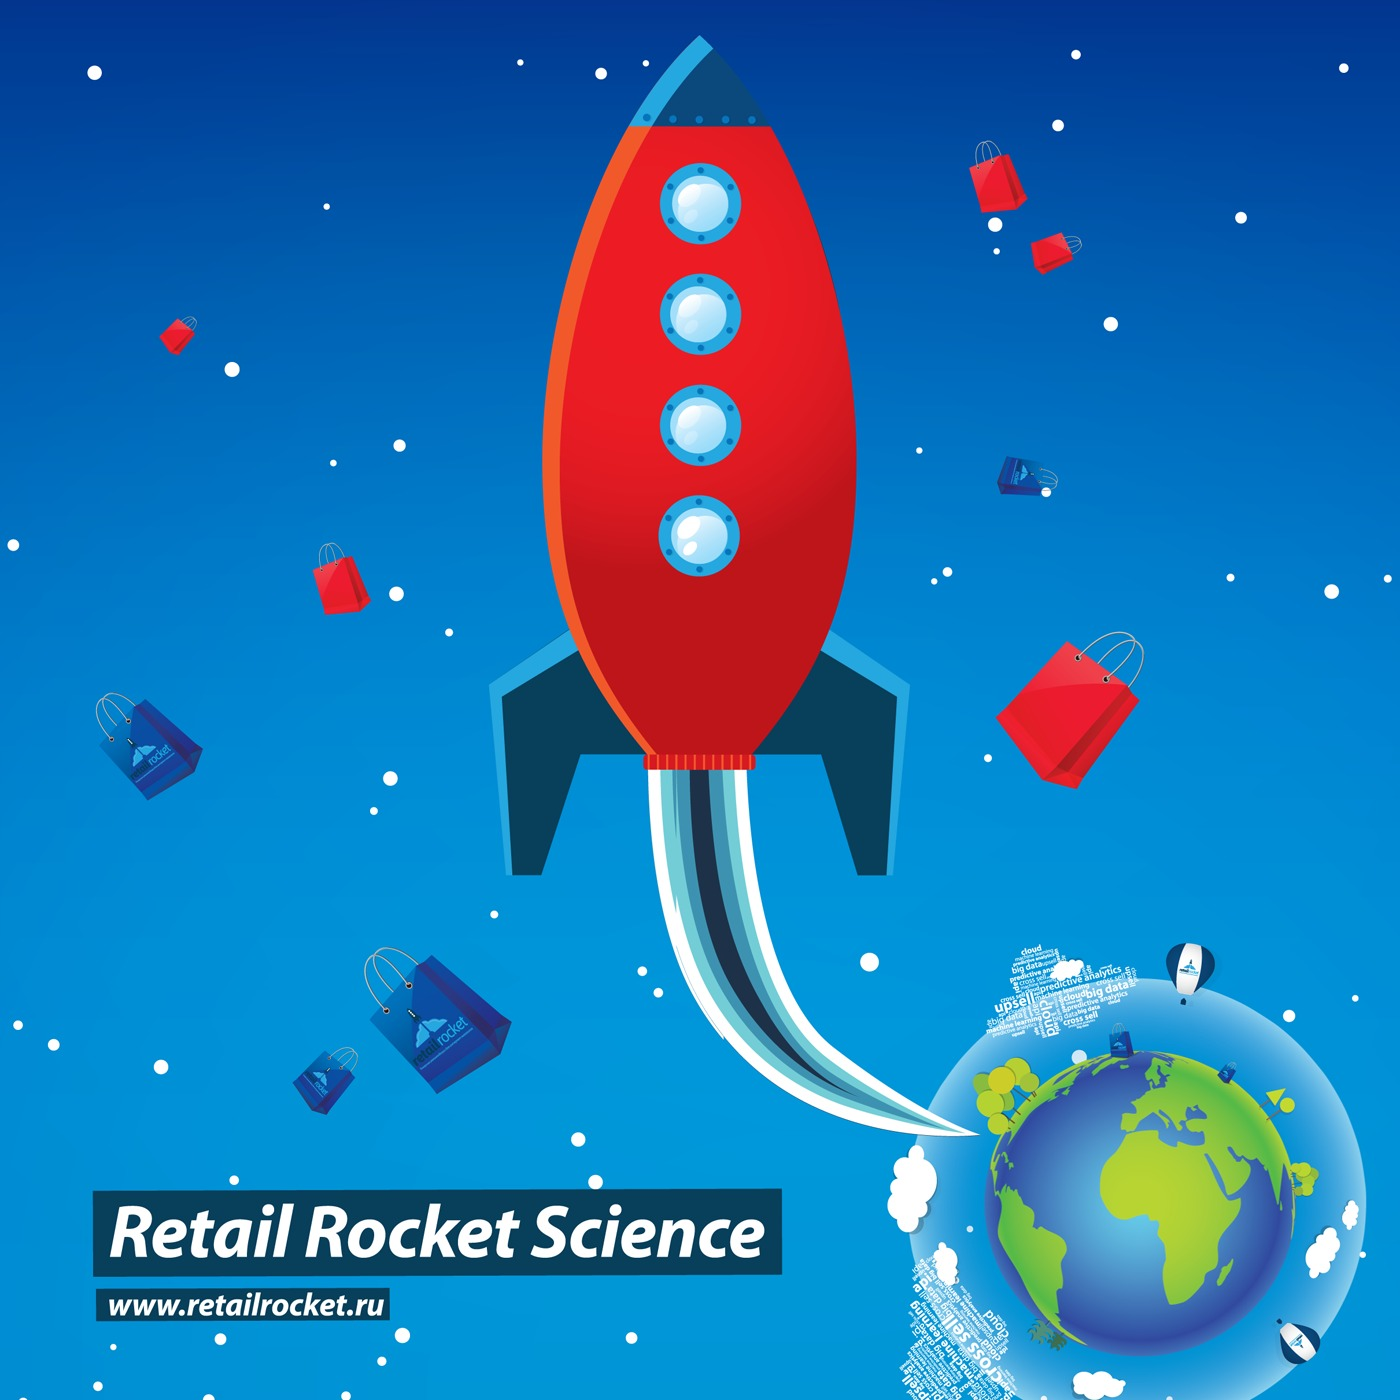 Retail Rocket Science